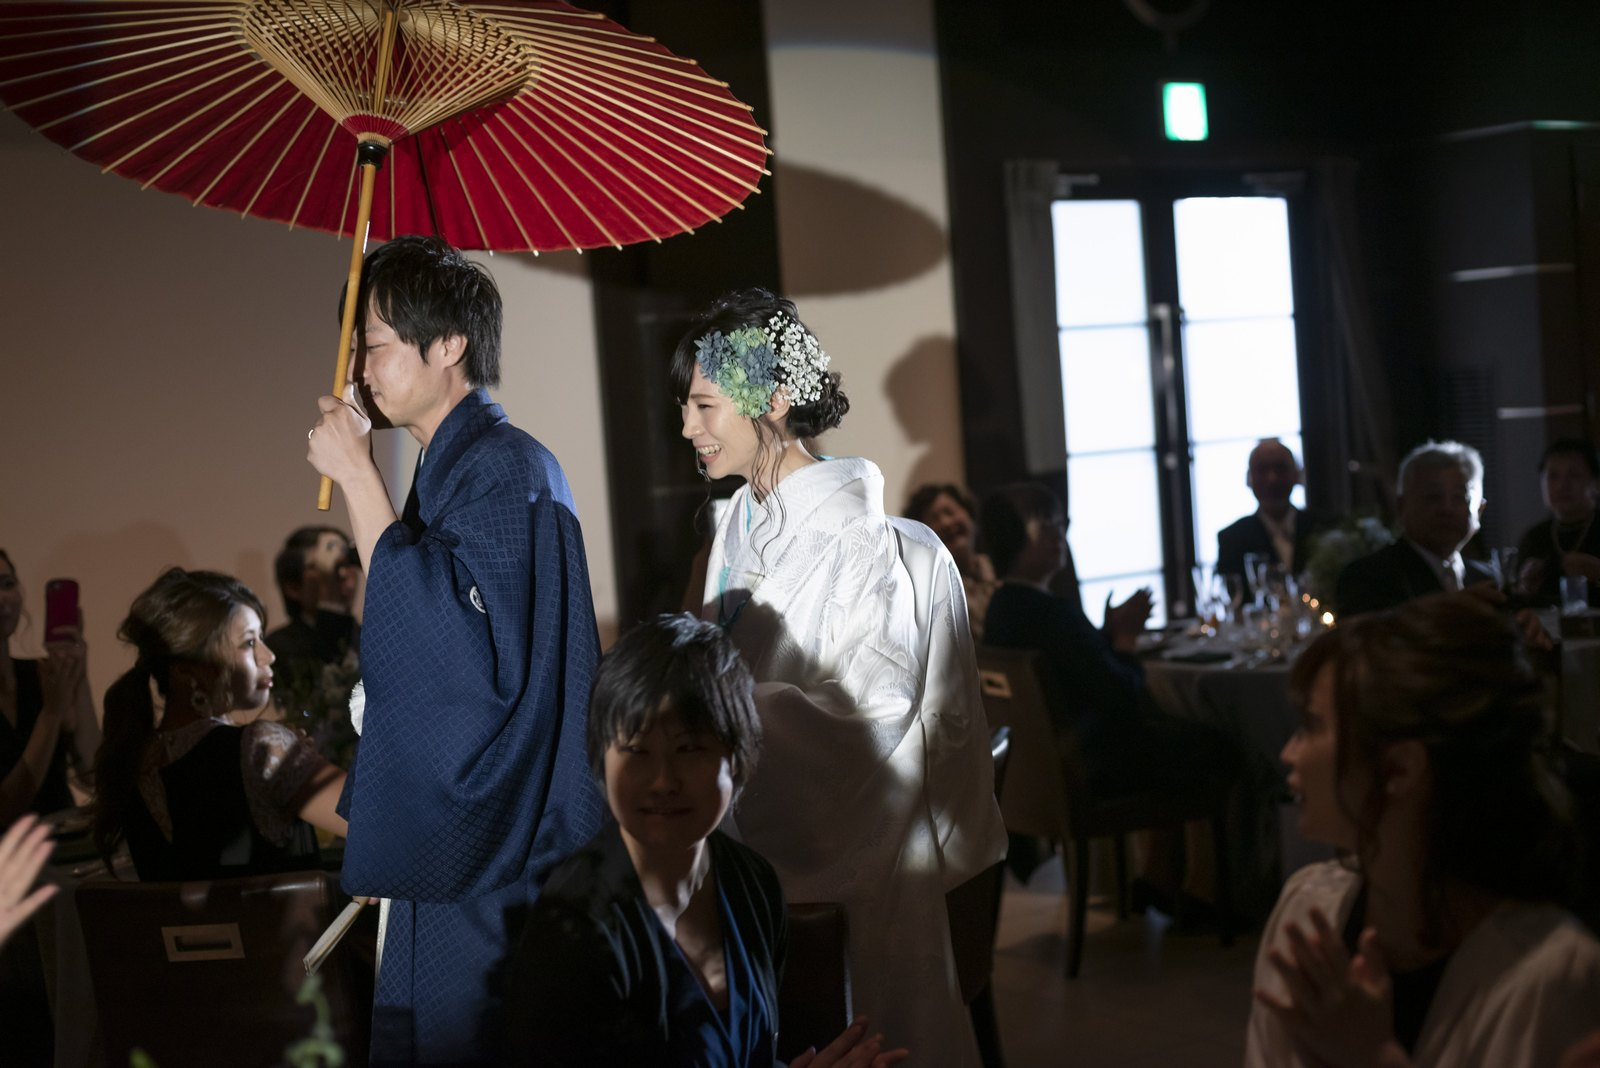 高松市の結婚式場アイルバレクラブ 入場